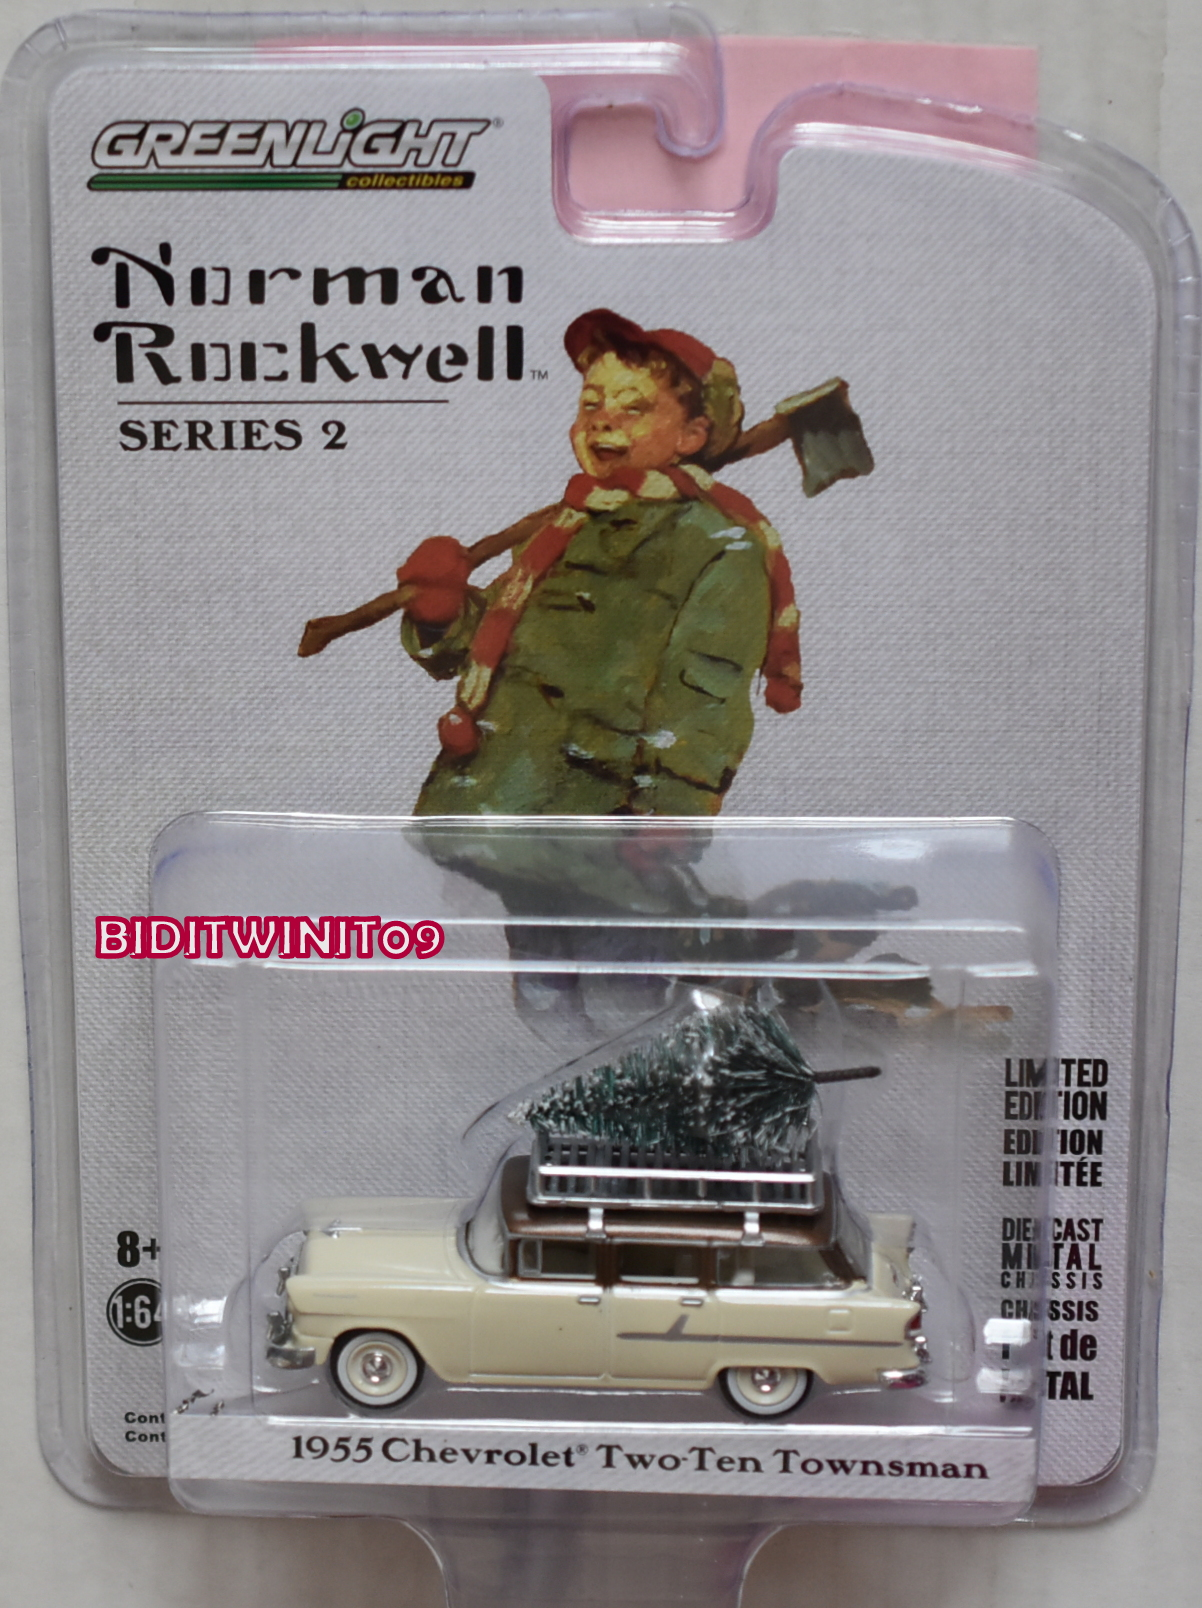 GREENLIGHT NORMAN ROCKWELL SERIES 2 1955 CHEVROLET TWO-TEN TOWNSMAN